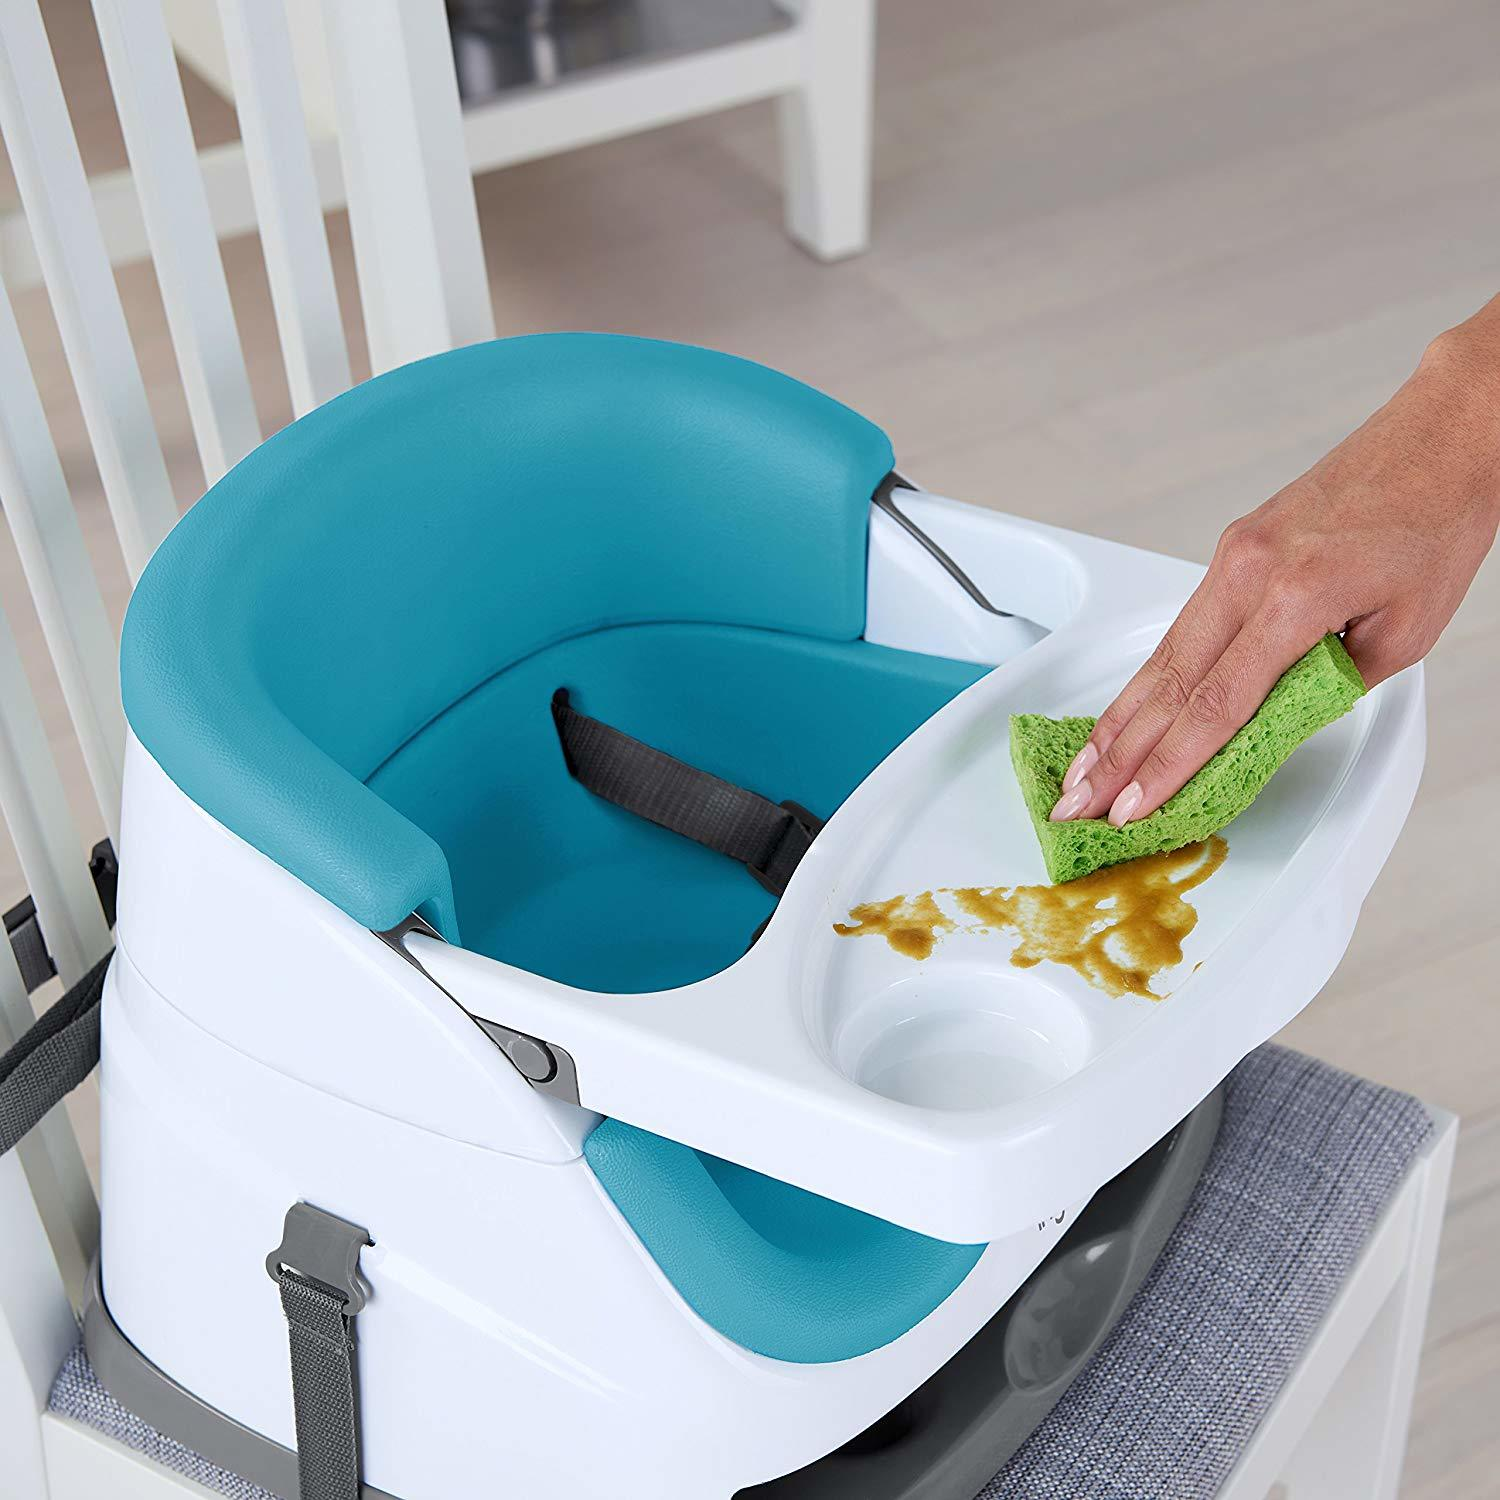 Ingenuity: Baby Base 2-in-1 Seat - Peacock Blue image